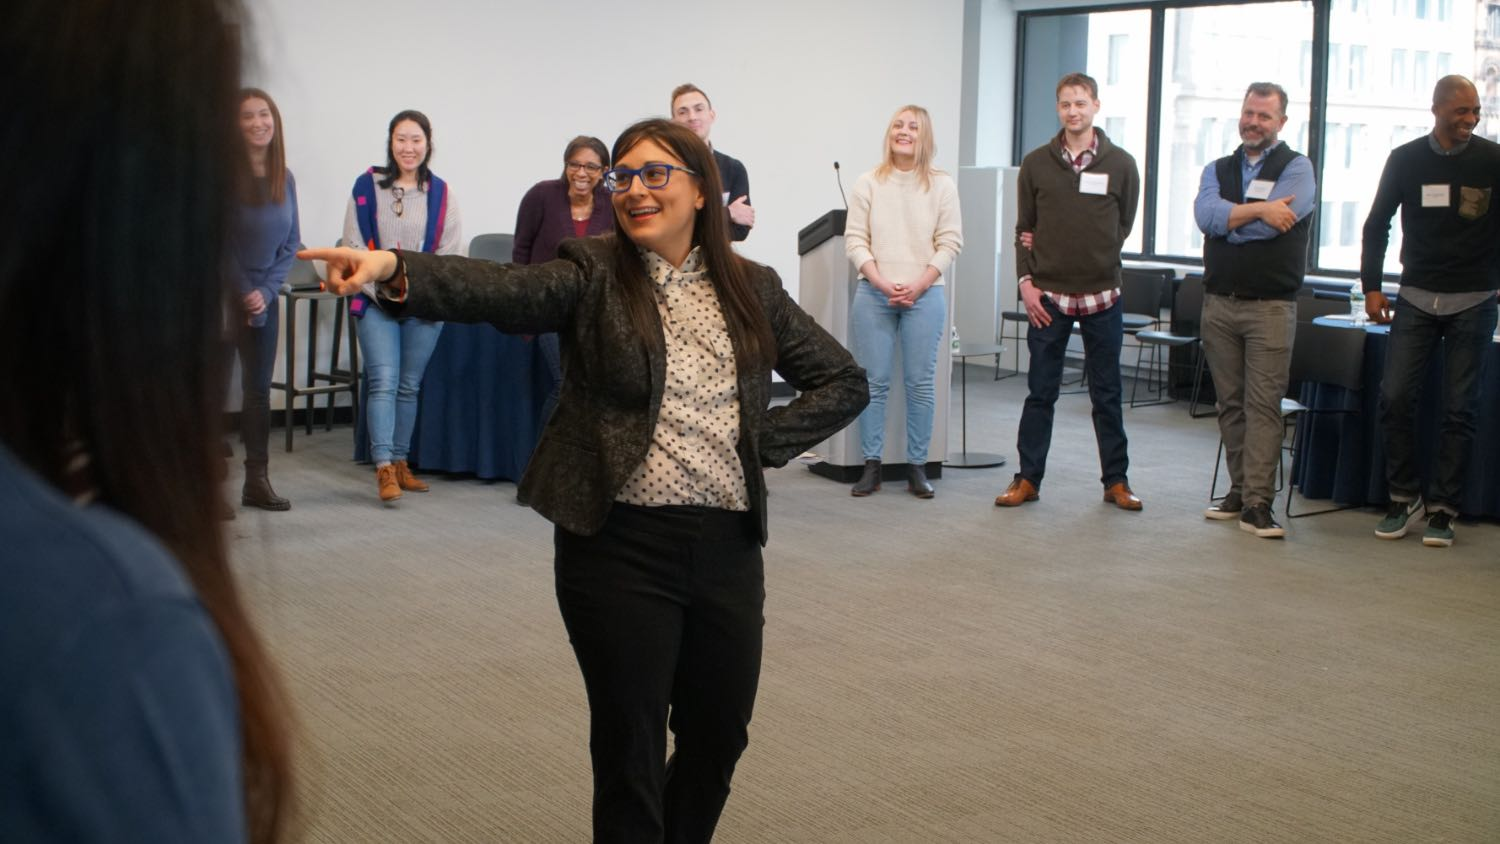 Public Group Classes: 3 Week Public Speaking - This workshop is designed for the individual seeking a group experience. You will learn the fundamentals of public speaking, how to own a room, and navigate challenging conversations.